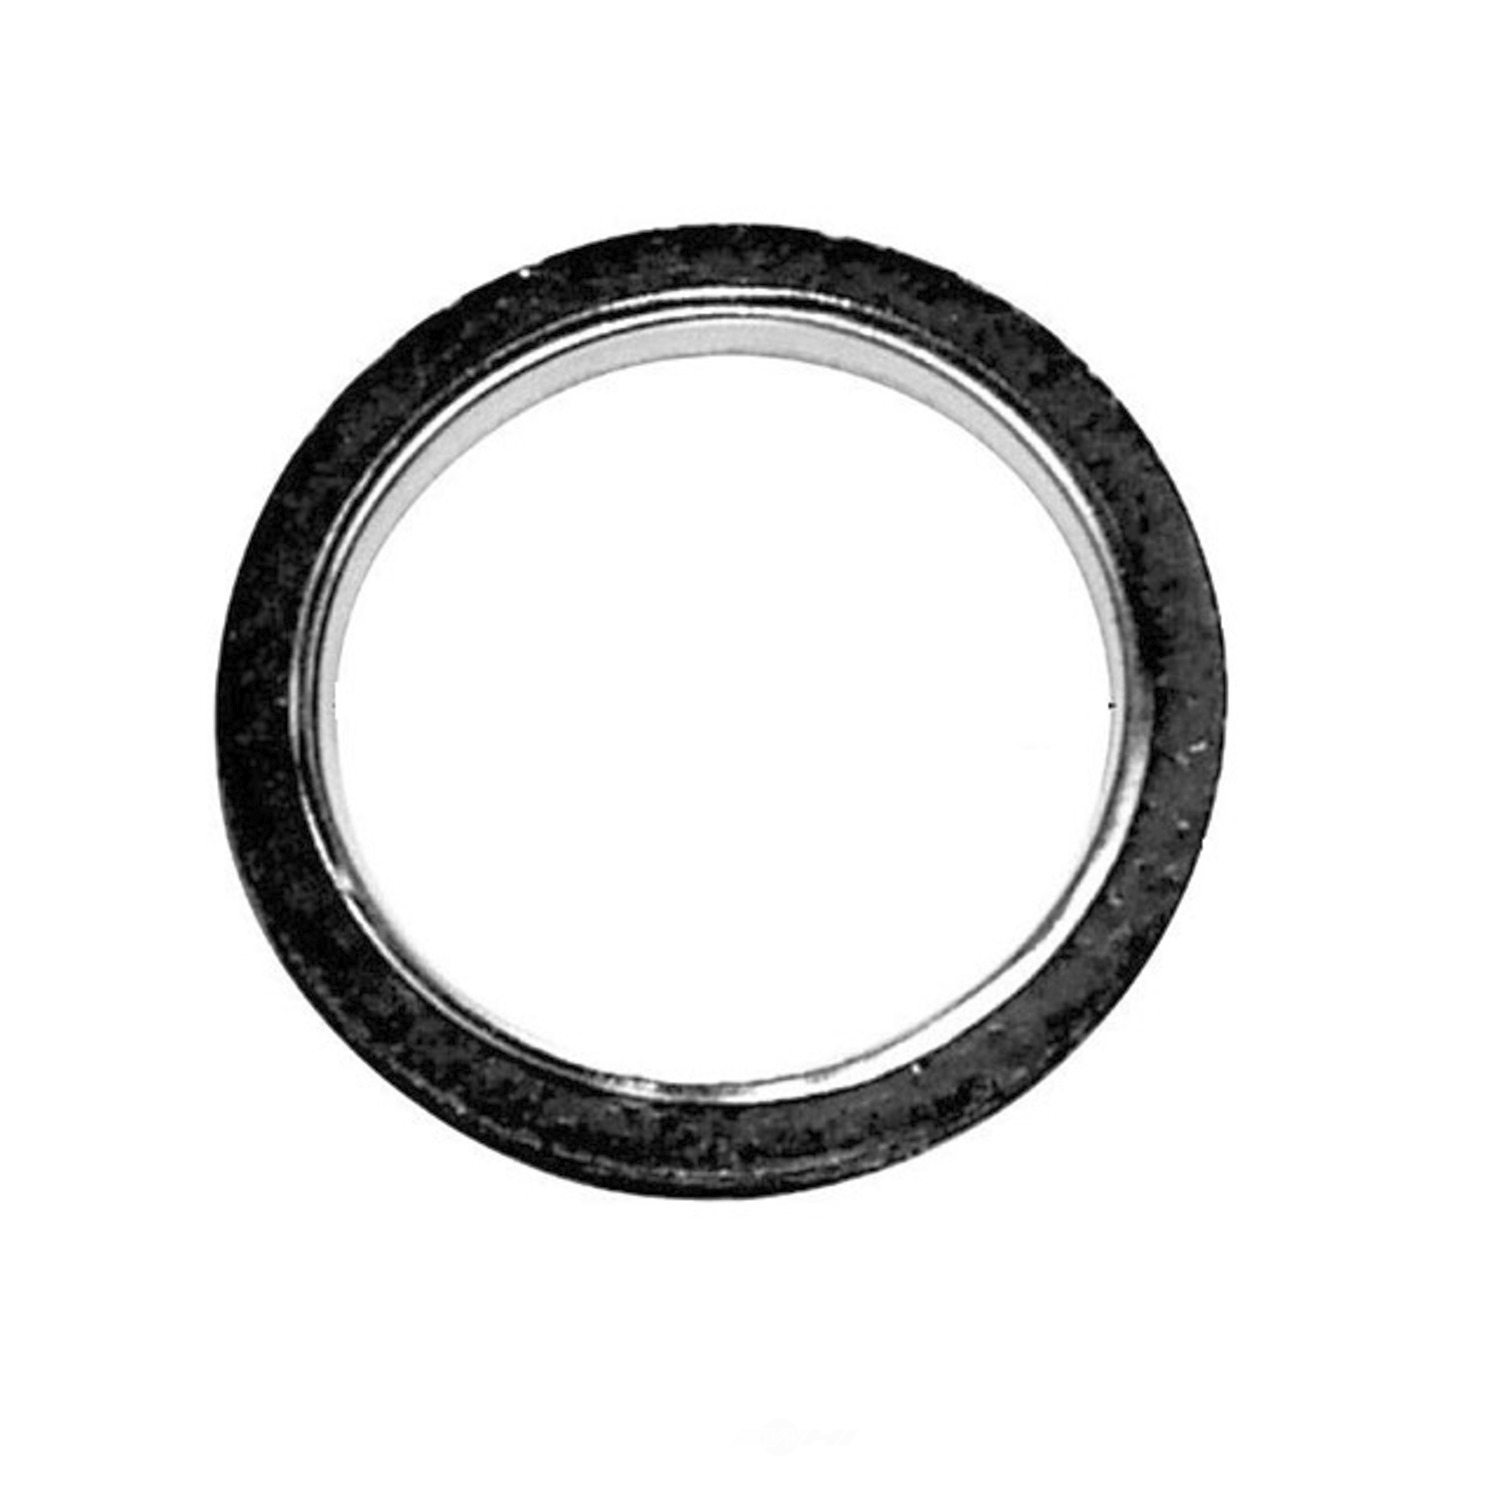 ANSA/SILVERLINE PRODUCTS - Exhaust Pipe Flange Gasket - ANE HW7116